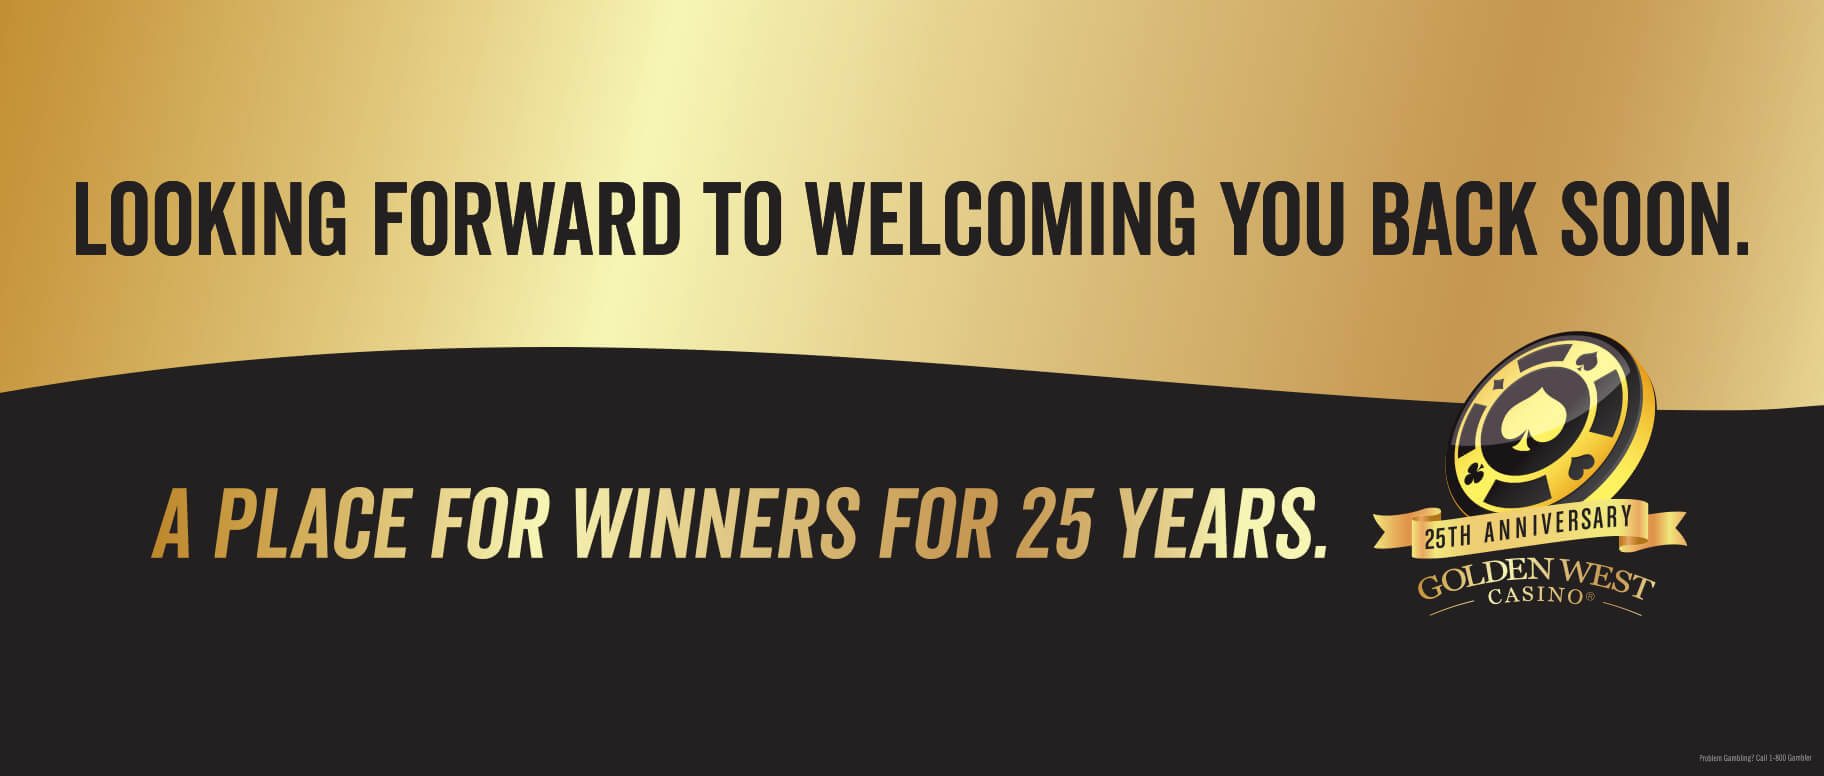 A Place For Winners For 25 Years